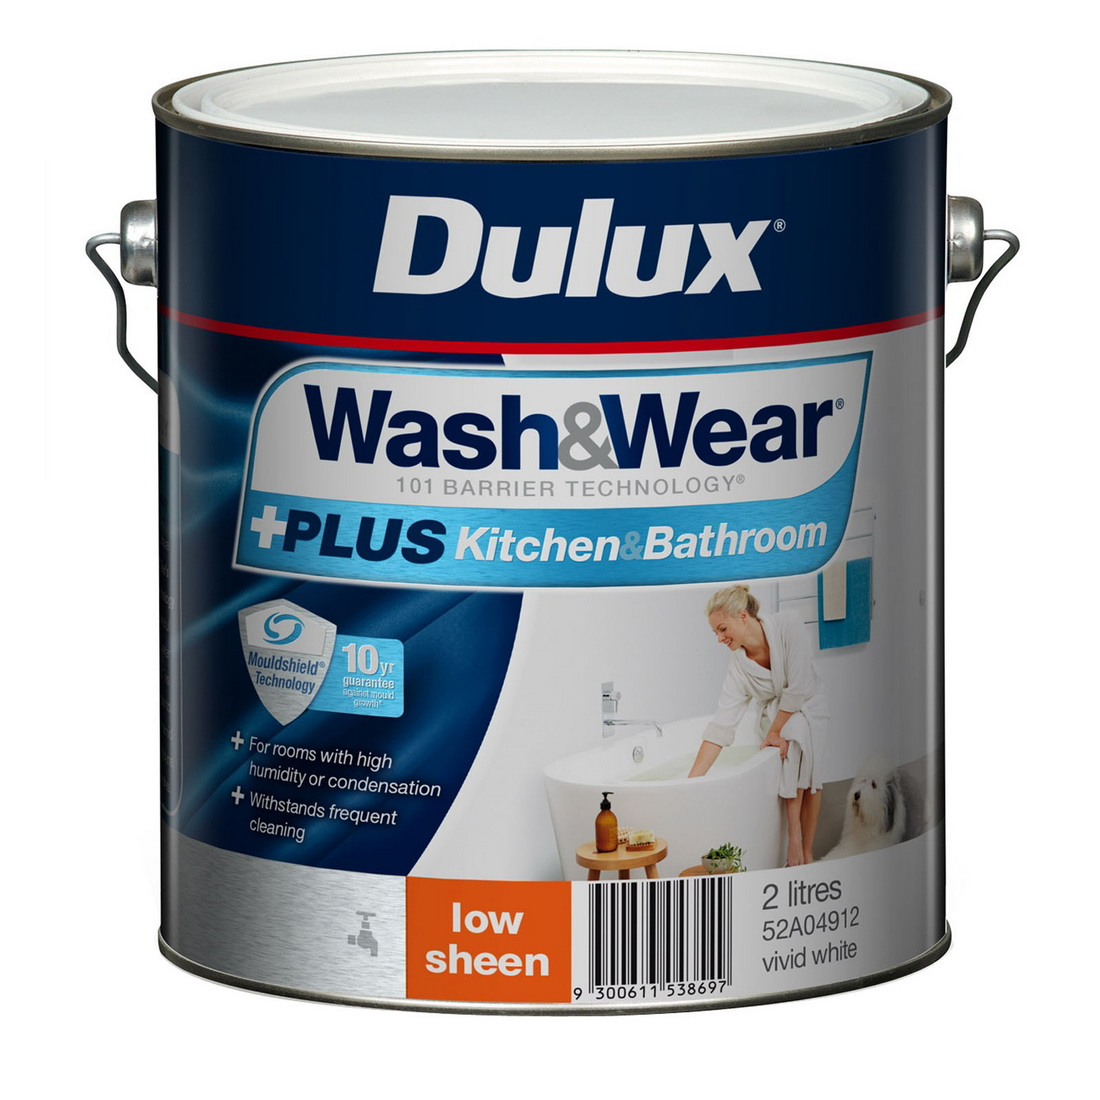 Wash And Wear Plus Kitchen And Bathroom Low Sheen Vivid White 2L